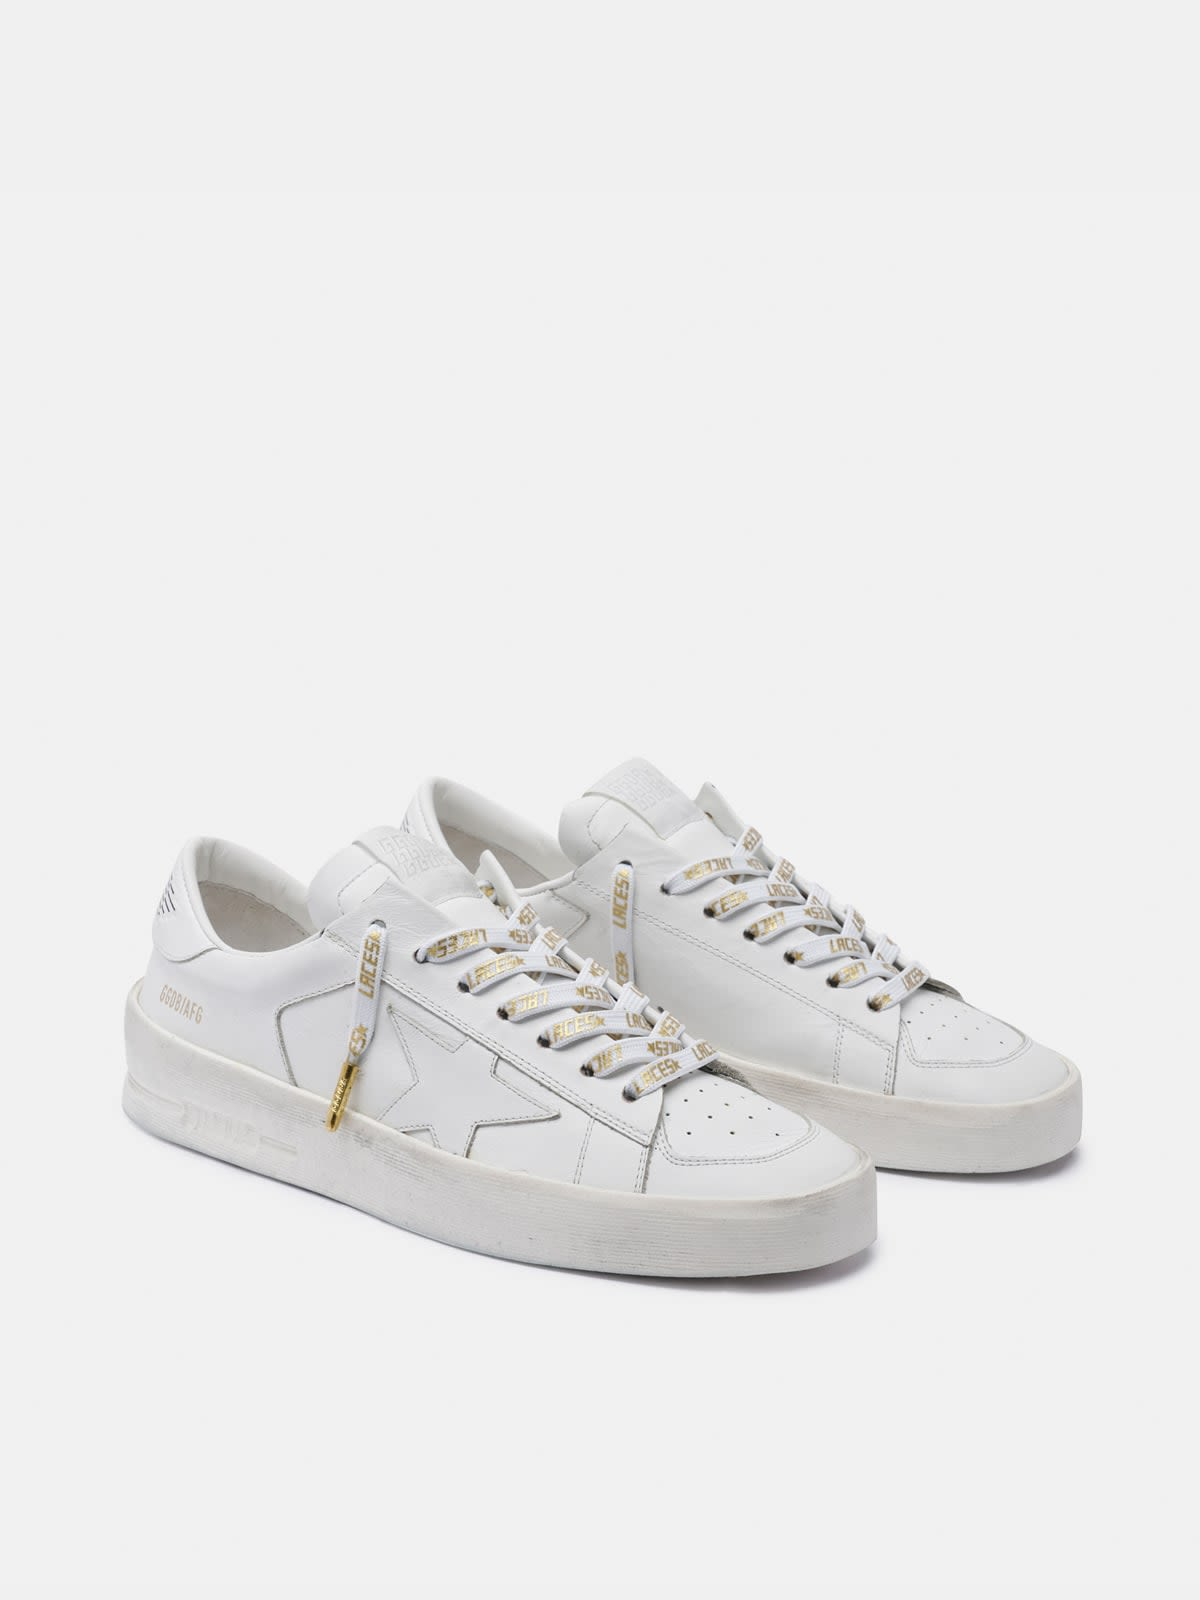 Women's white laces with gold laces print